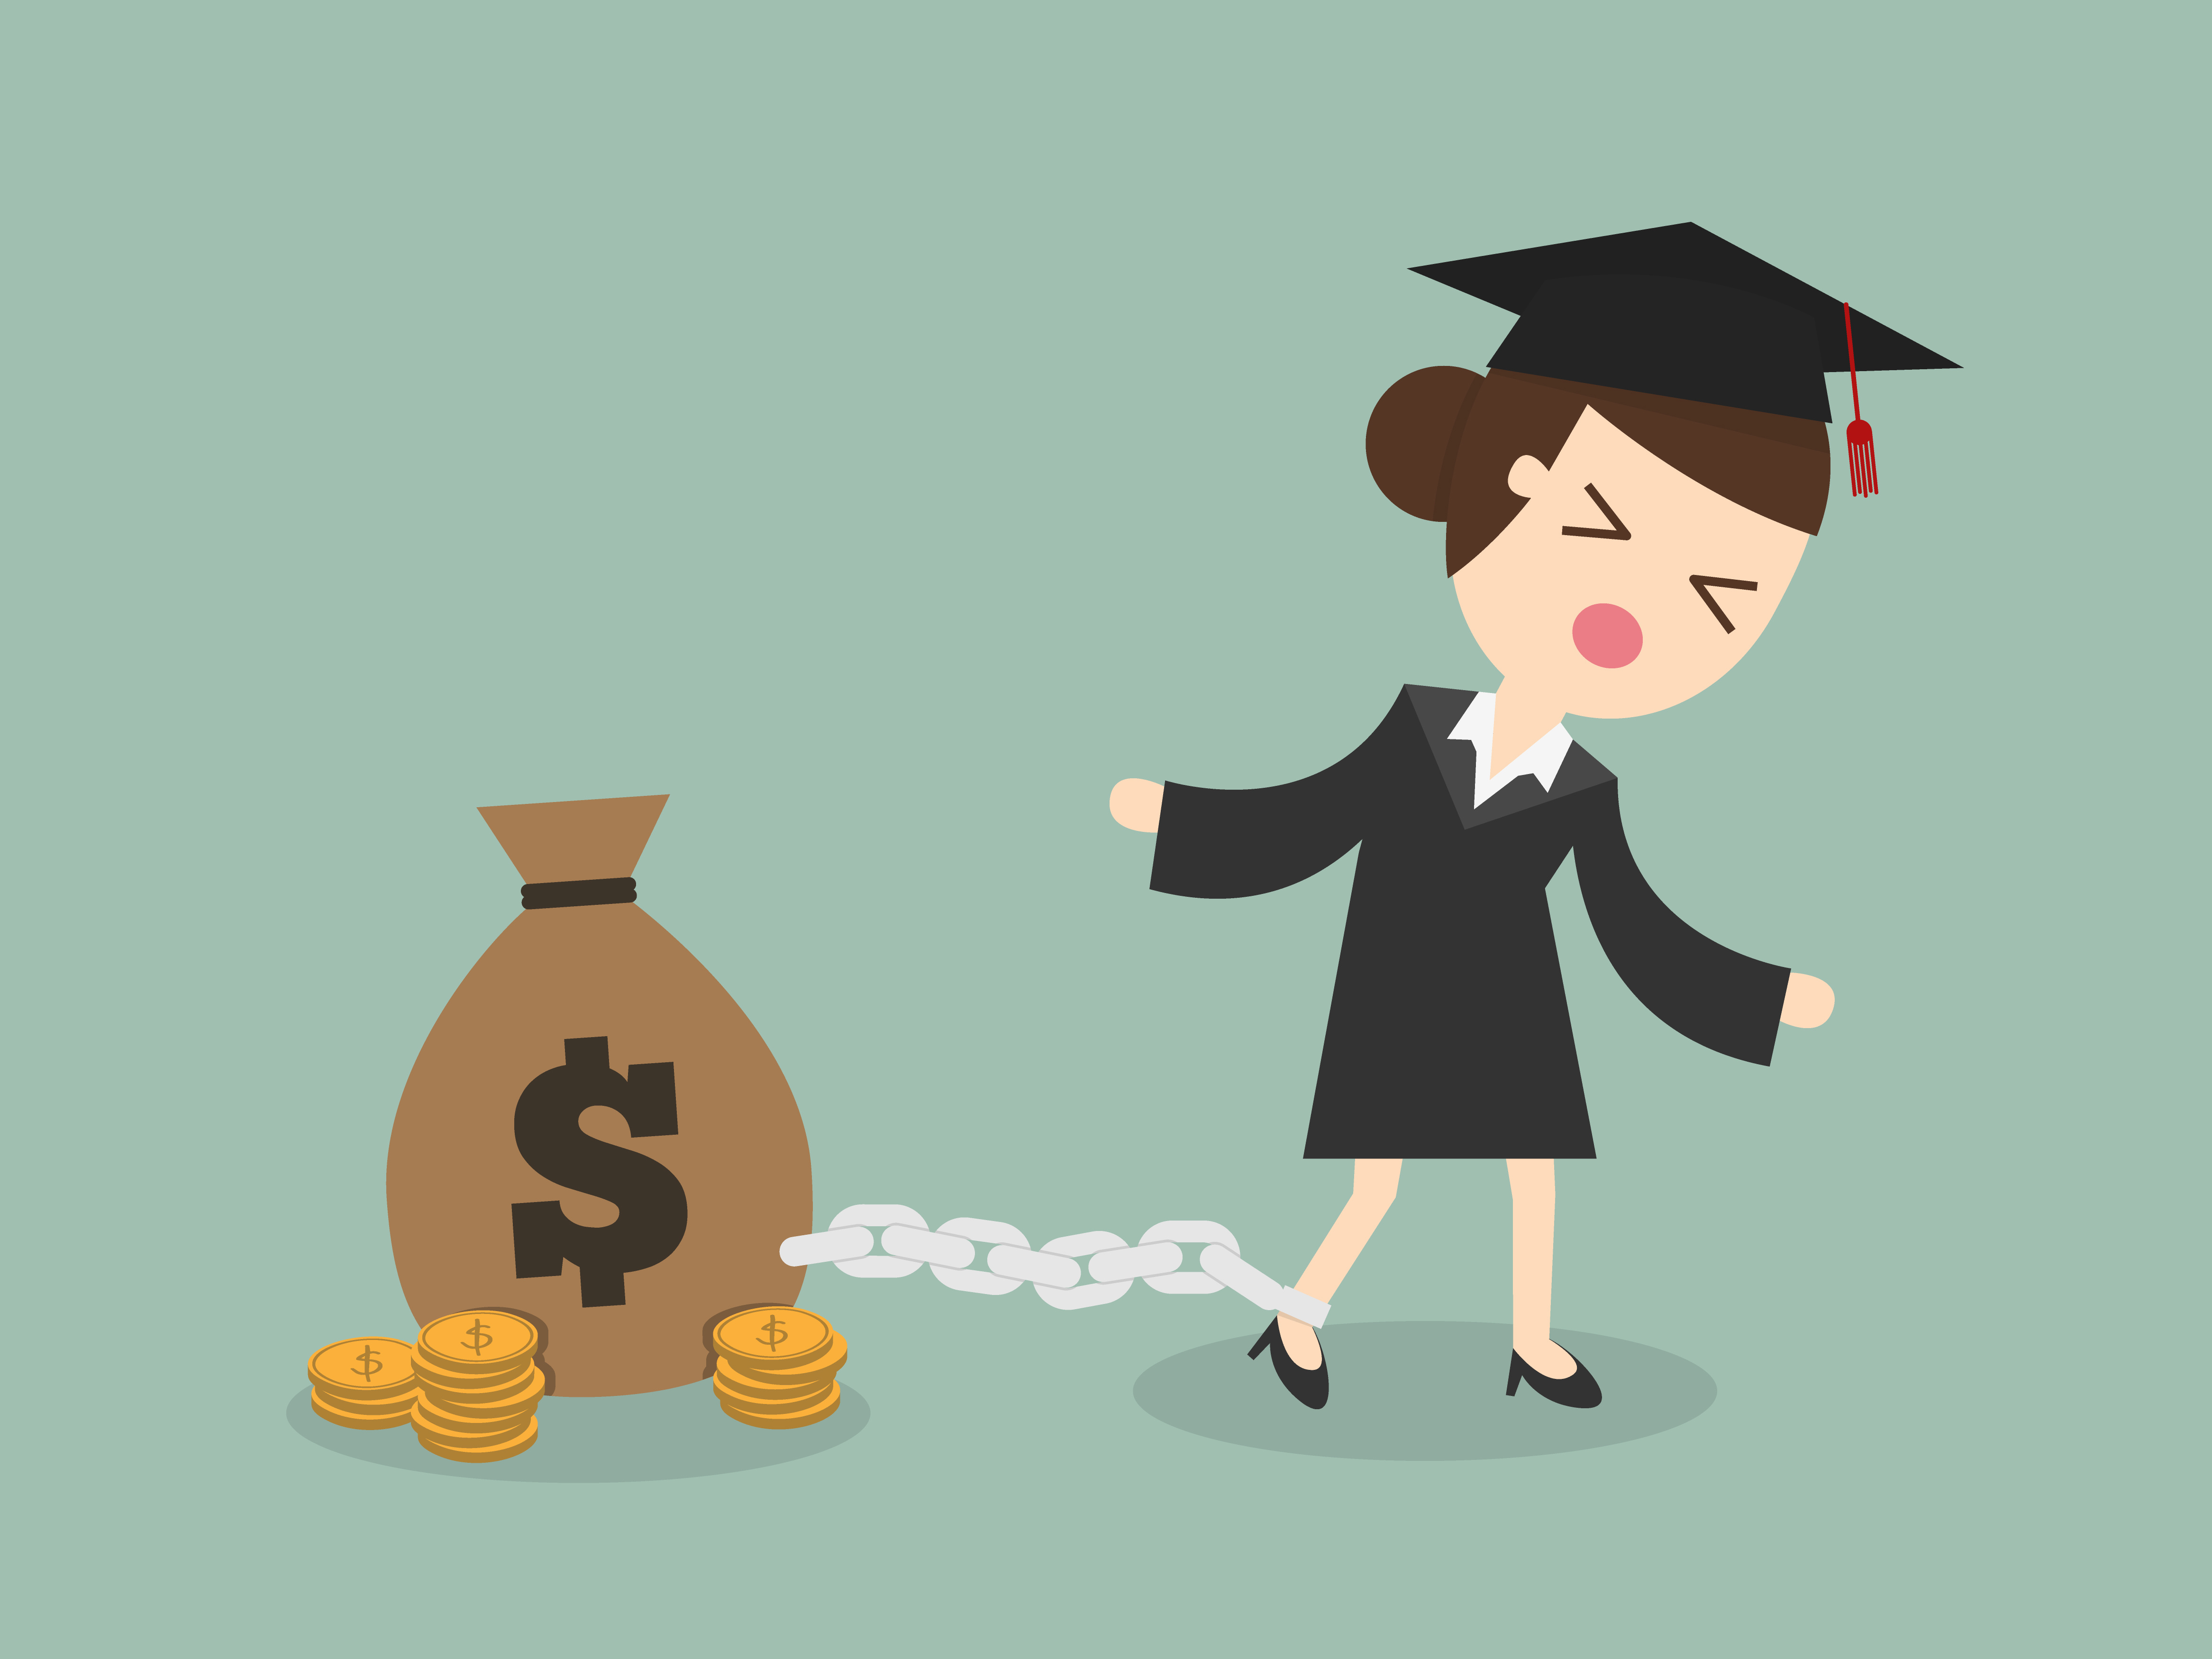 Your 401(k) plan may help employees with student loan debt